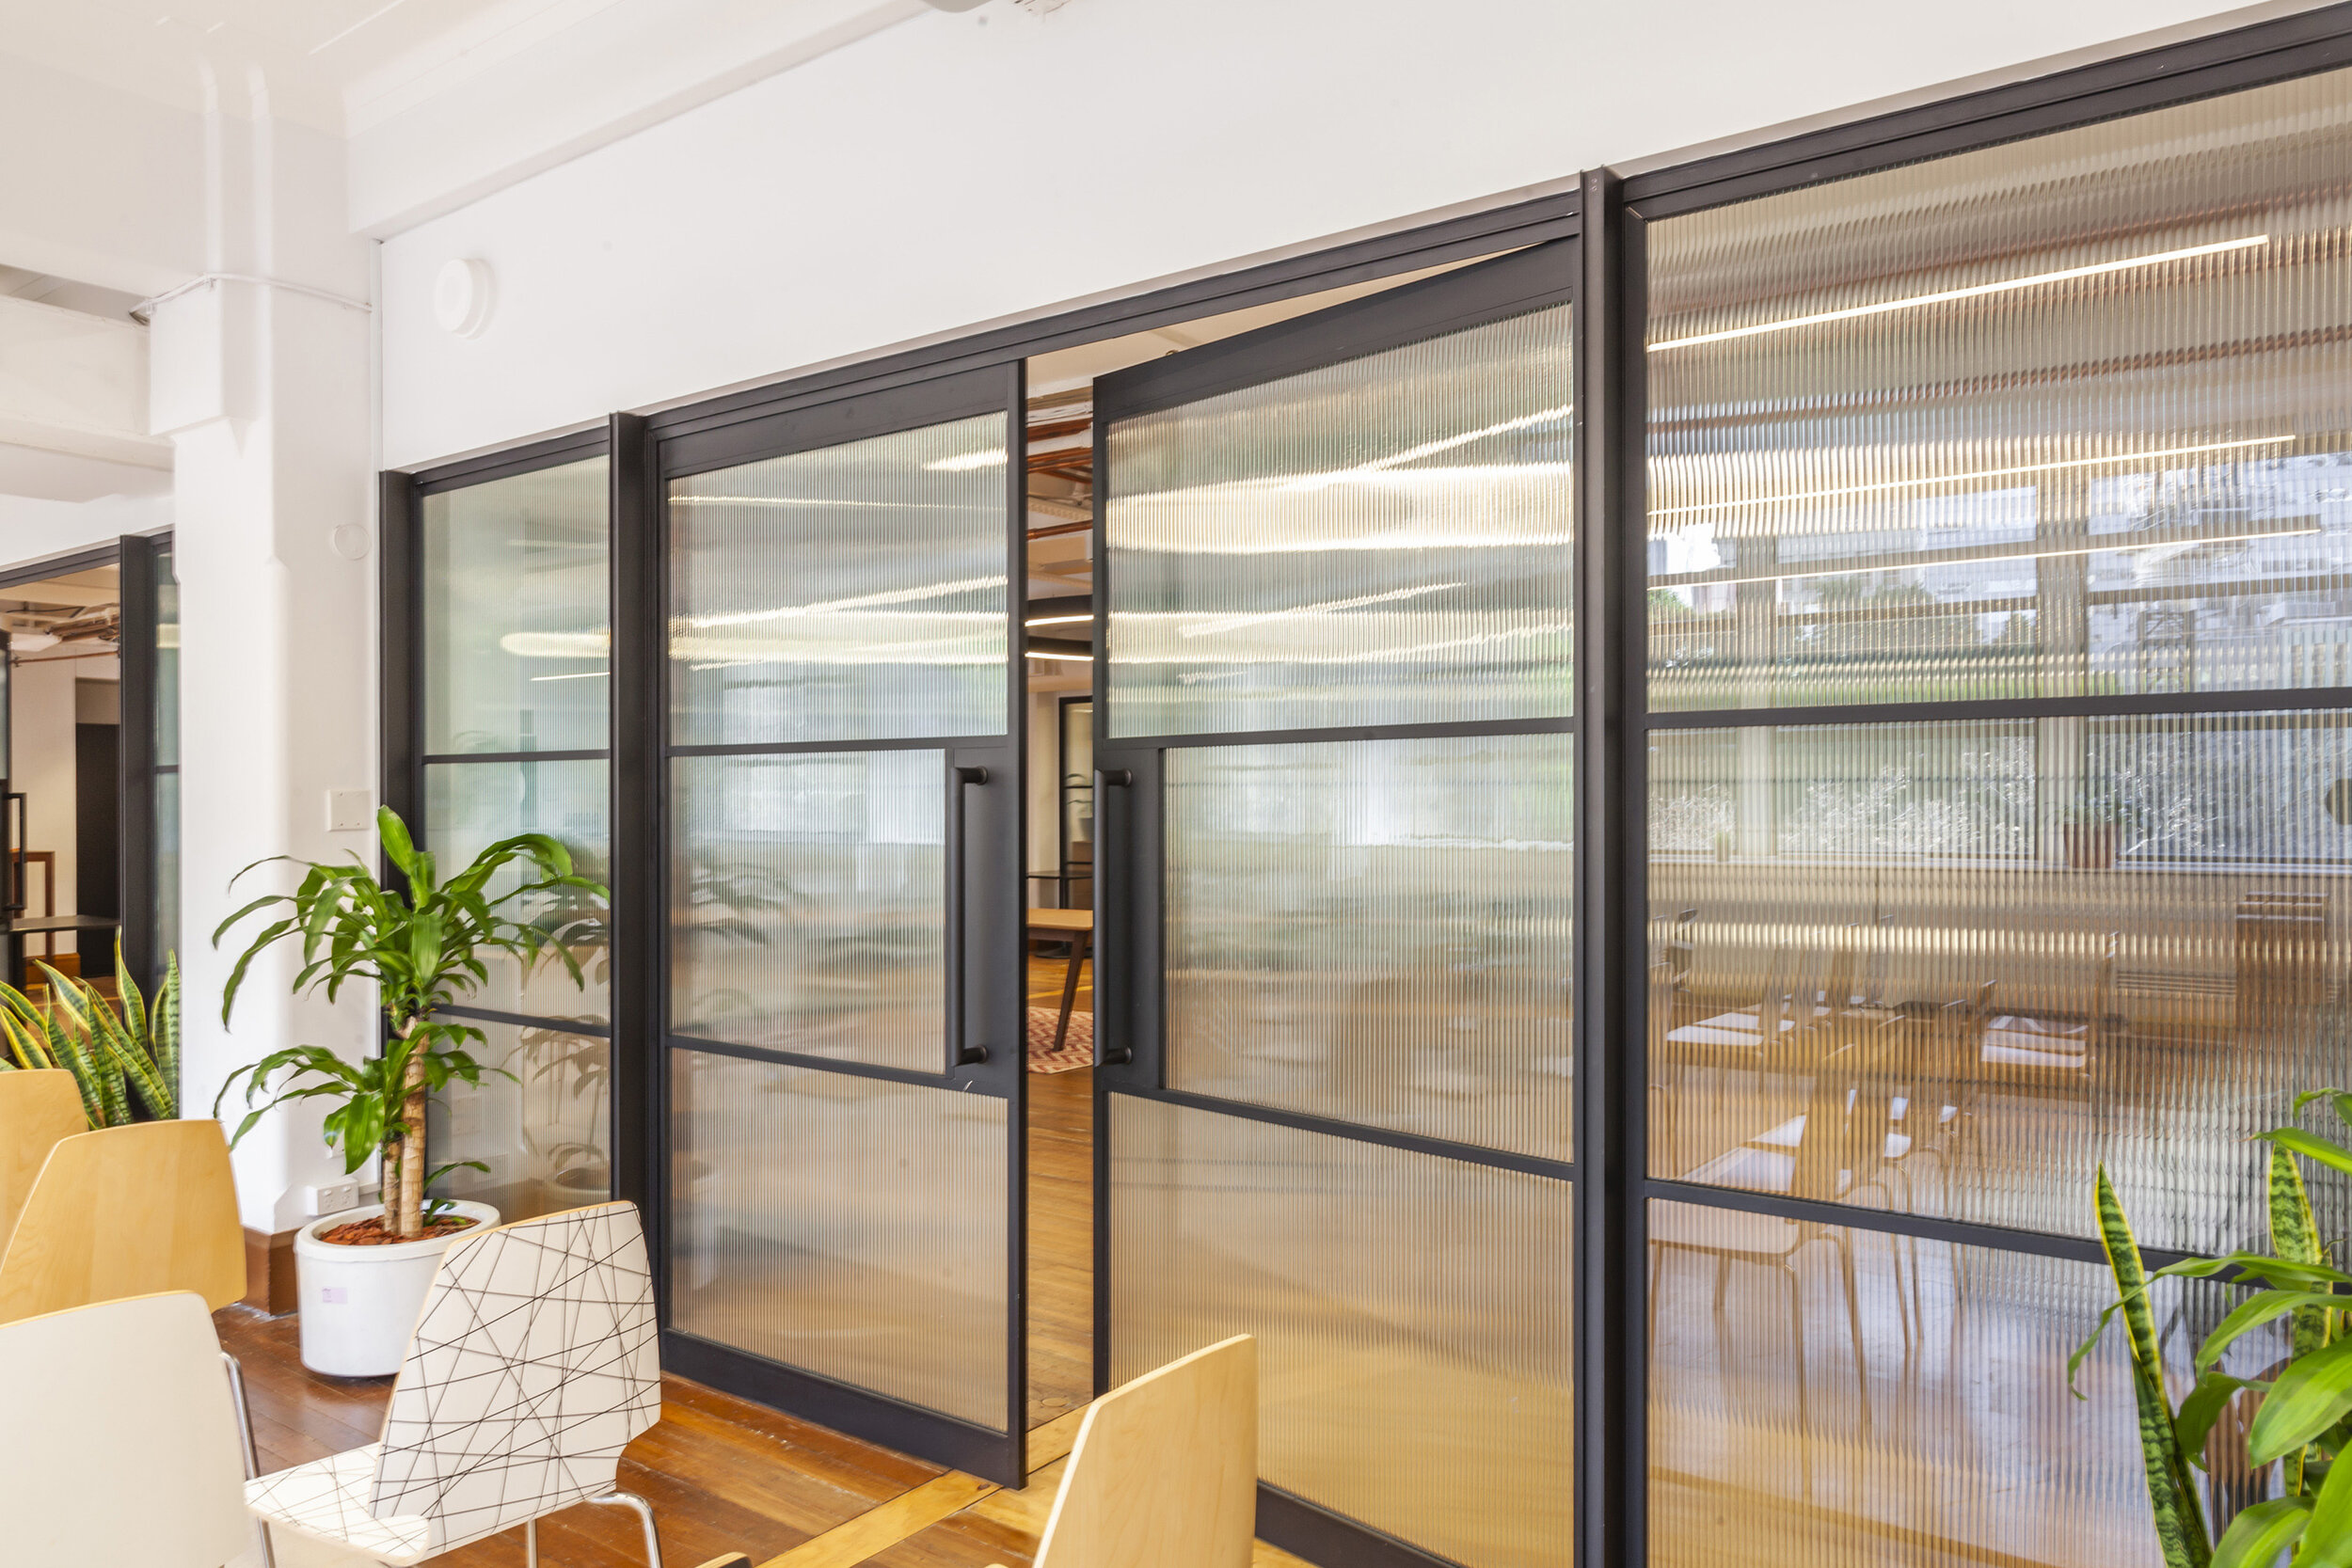 jeb-partitions-brooklyn-stone&chalk_fintech_hub_office-au-02.jpg